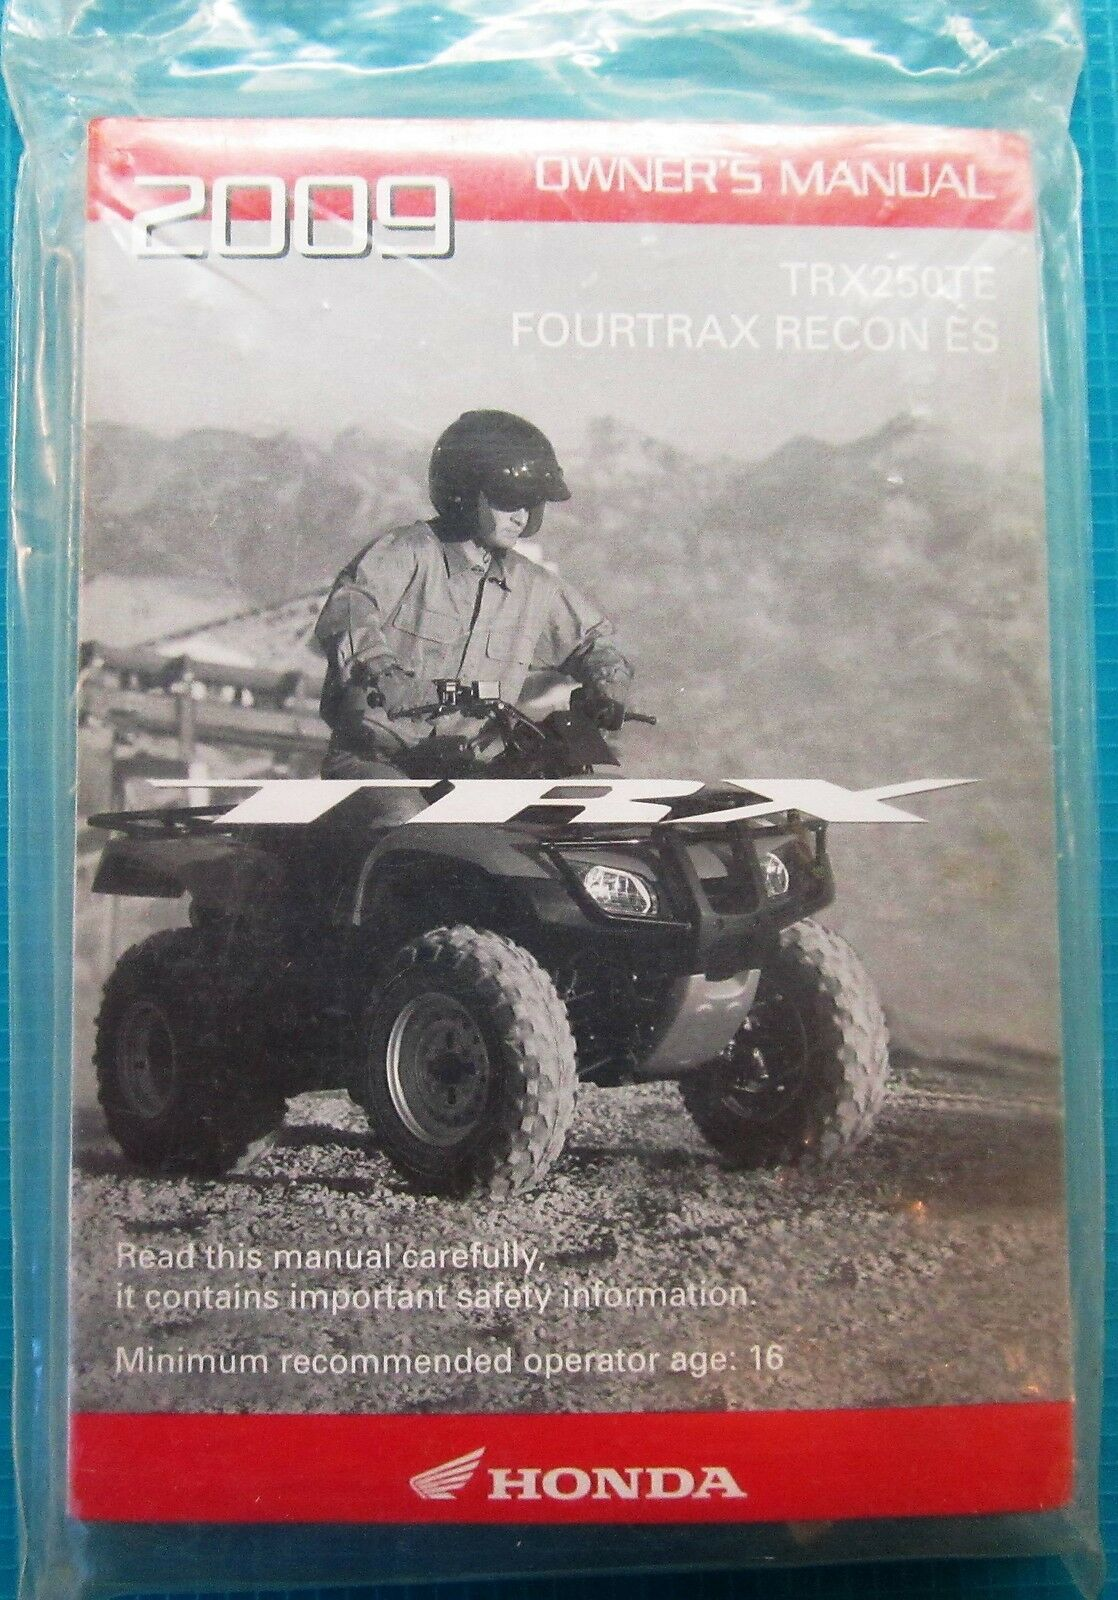 TRX250TE Fourtrax Recon ES Owner's Manual 1 of 2Only 1 available ...